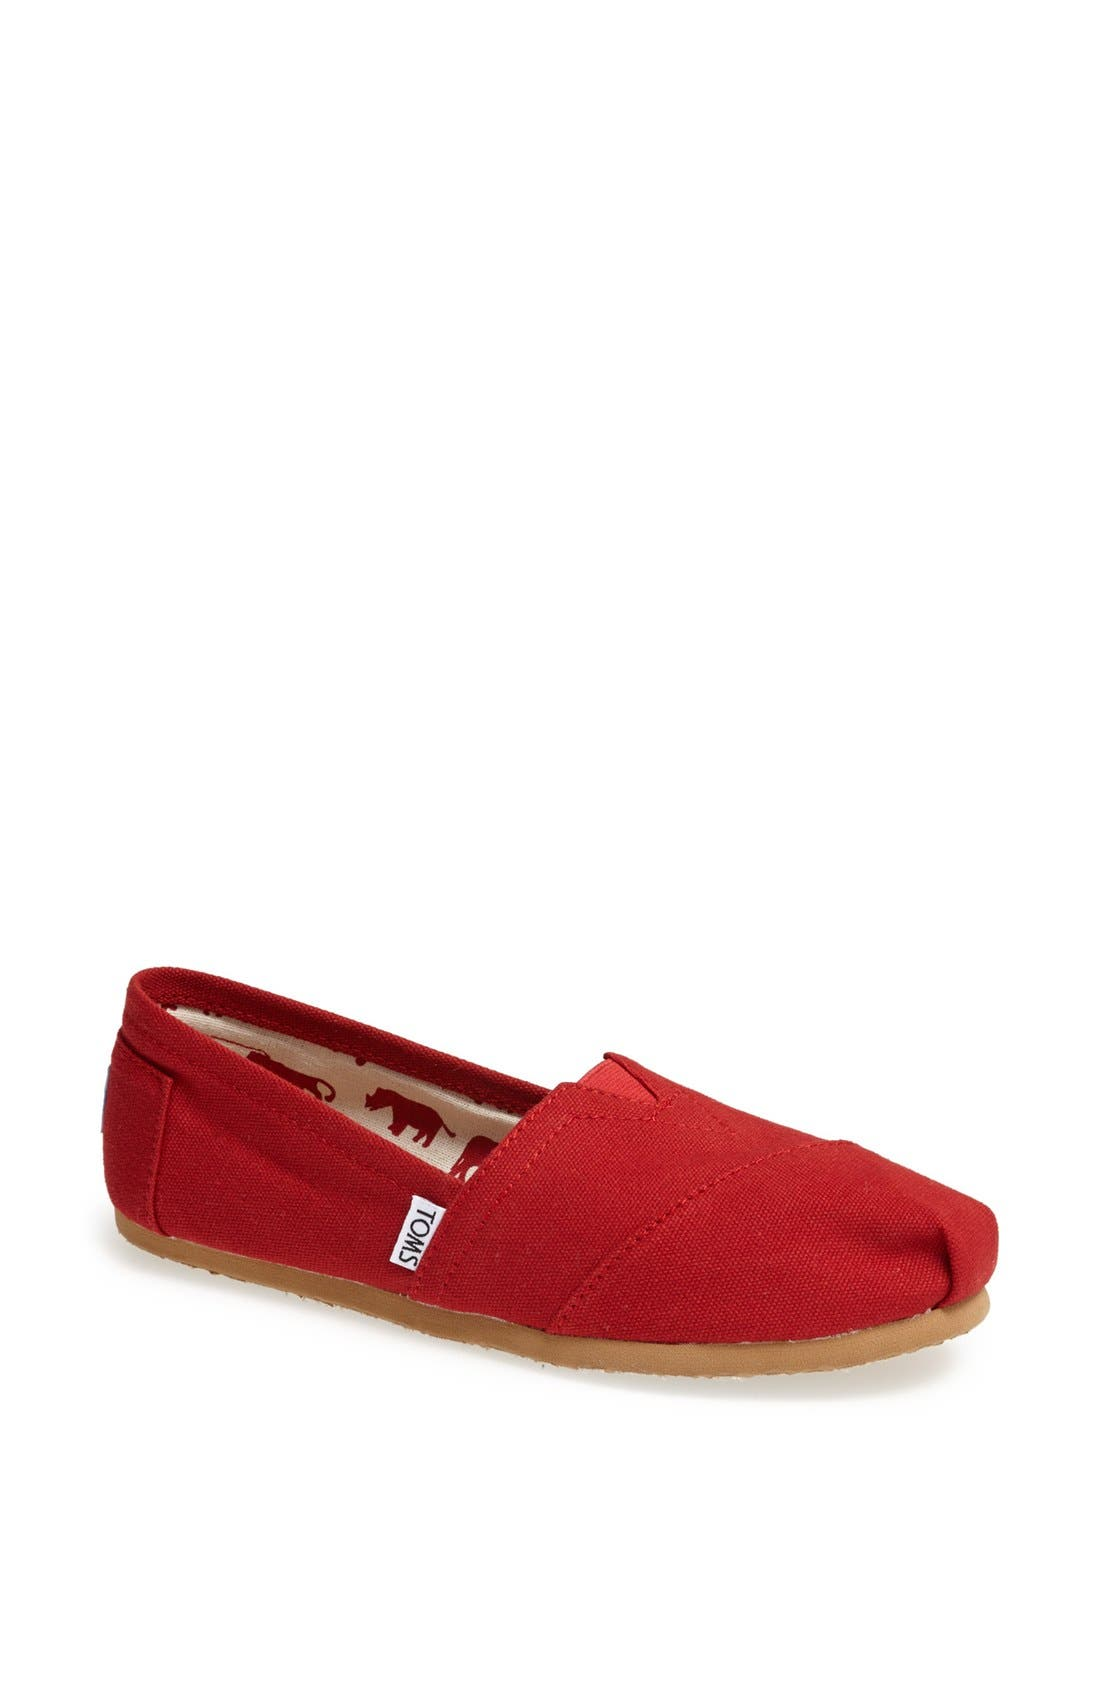 Alternate Image 1 Selected - TOMS Classic Canvas Slip-On (Women)